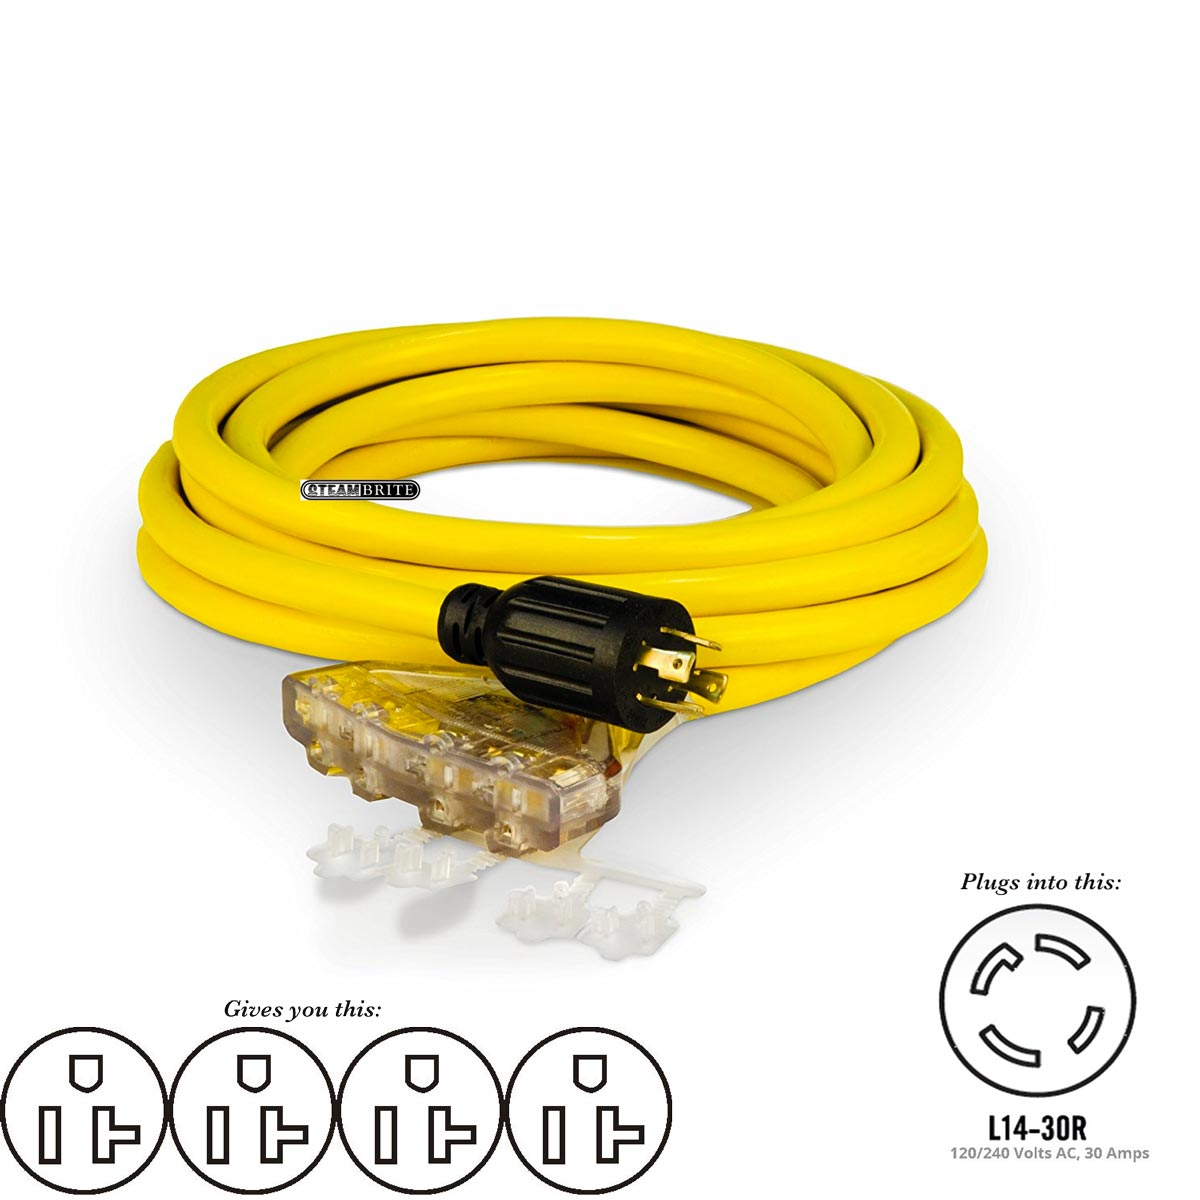 BE Pressure 85.508.003 Champion Power 48036 L14-30P X Four 5-20R Generator 10-3 X 25ft Quad Tap Power Cord Adapter